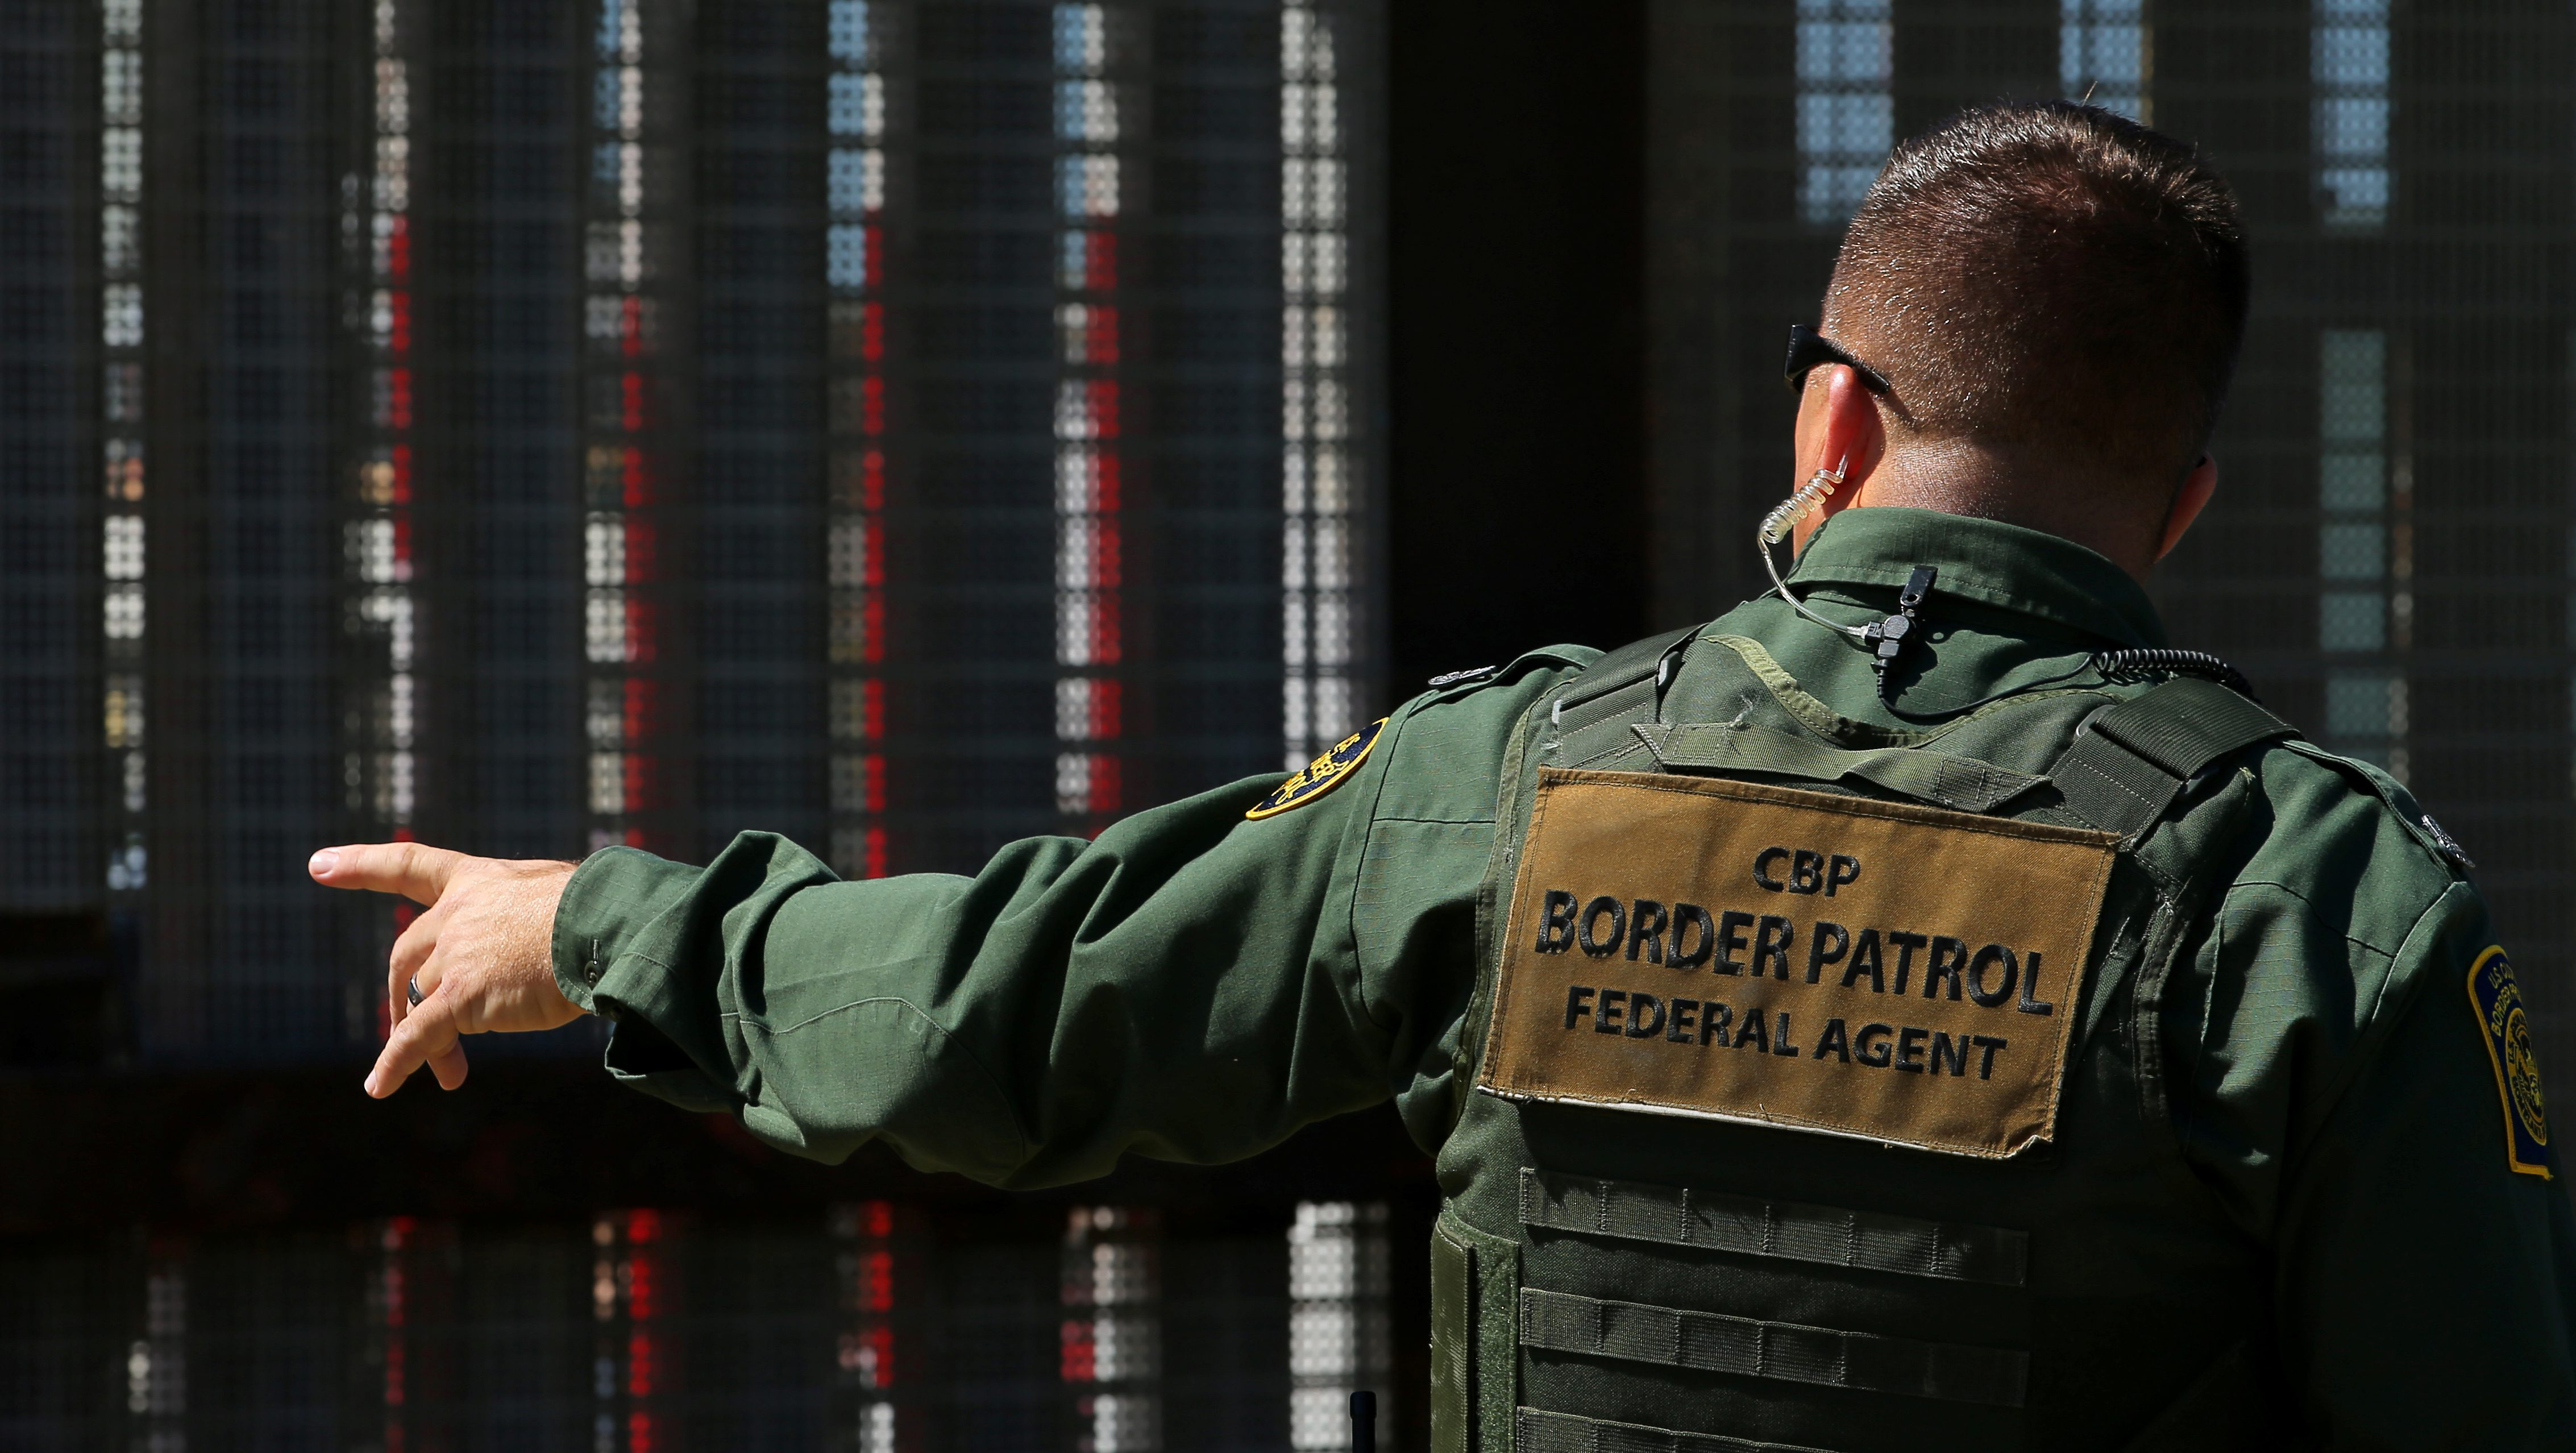 A U.S. Border patrol agent directs people near the fence with Mexico during a Children's Day event at Border Field State Park in San Diego, California, U.S., April 30, 2017.   REUTERS/Mike Blake - RTS14L1S